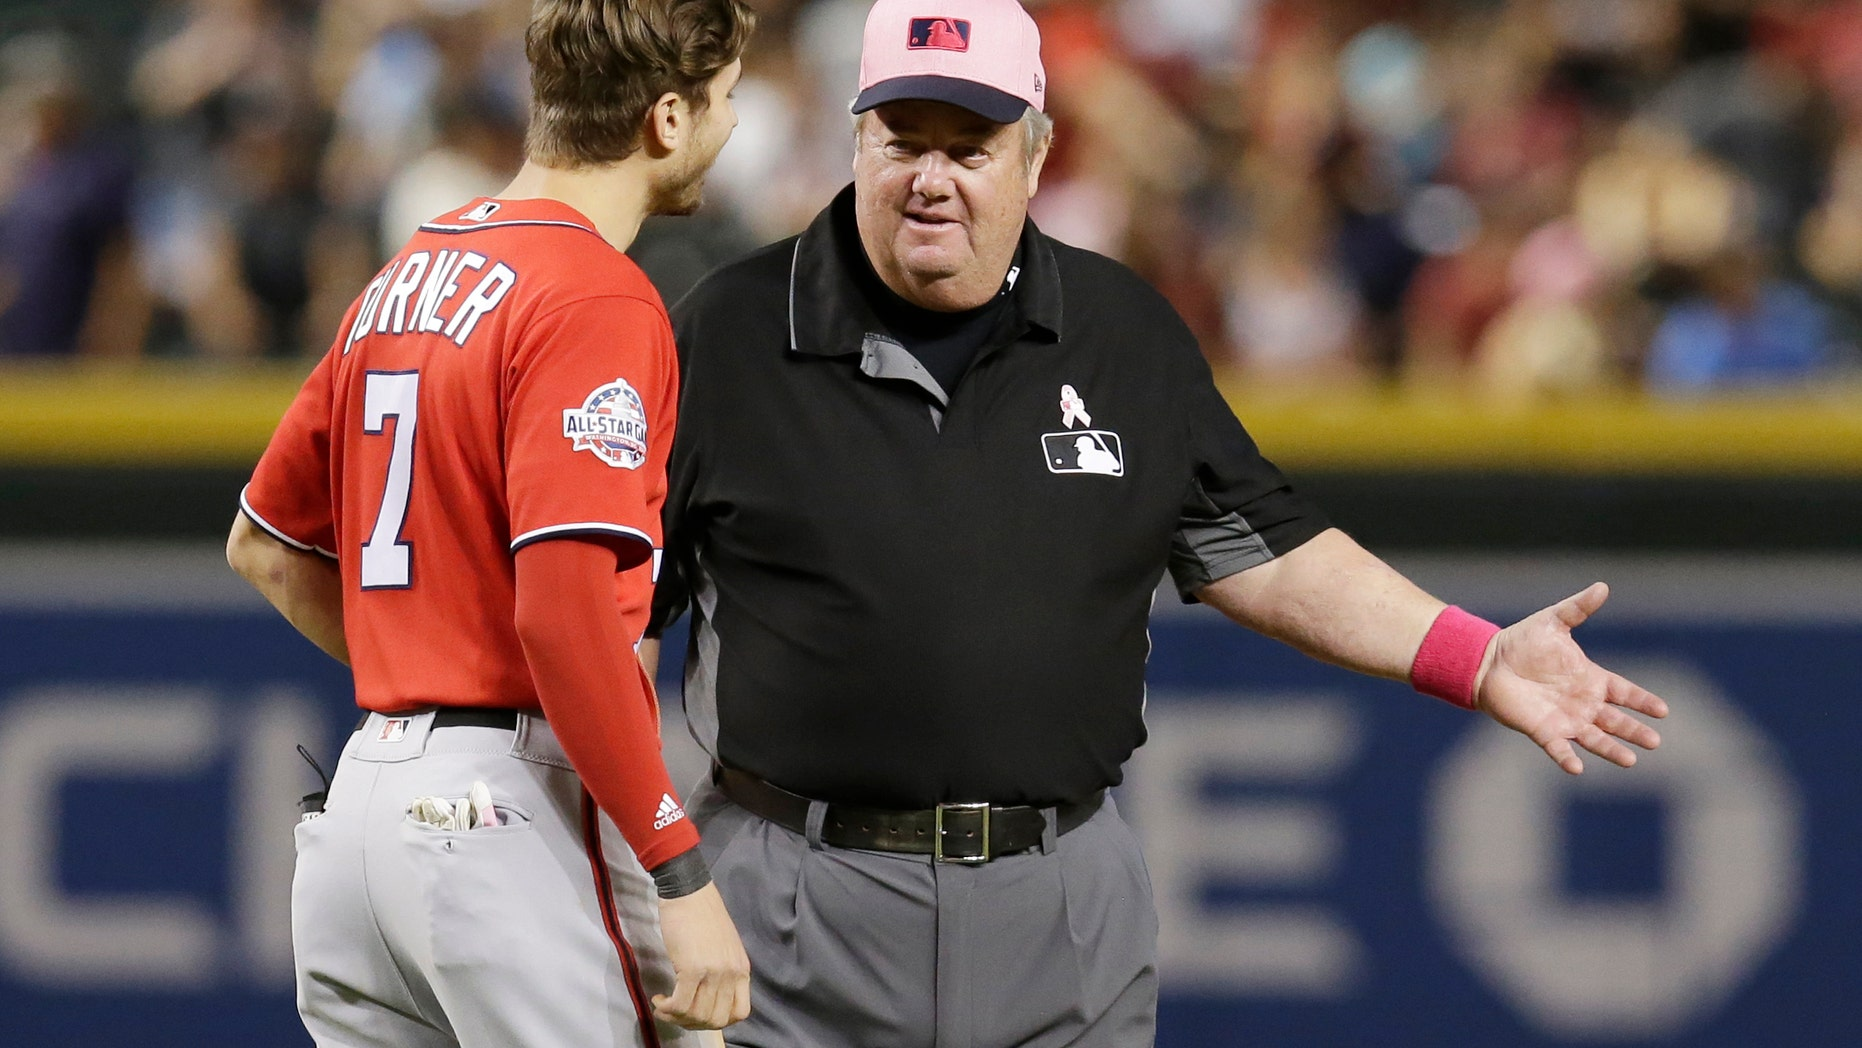 FILE - In this May 13, 2018, file photo, MLB umpire Joe West, right, talks with a player in the ninth inning during a baseball game between the Arizona Diamondbacks and the Washington Nationals in Phoenix. West, who has umpired more than 5,000 big league games, said the 2016 TrackMan computer system test was far from perfect.